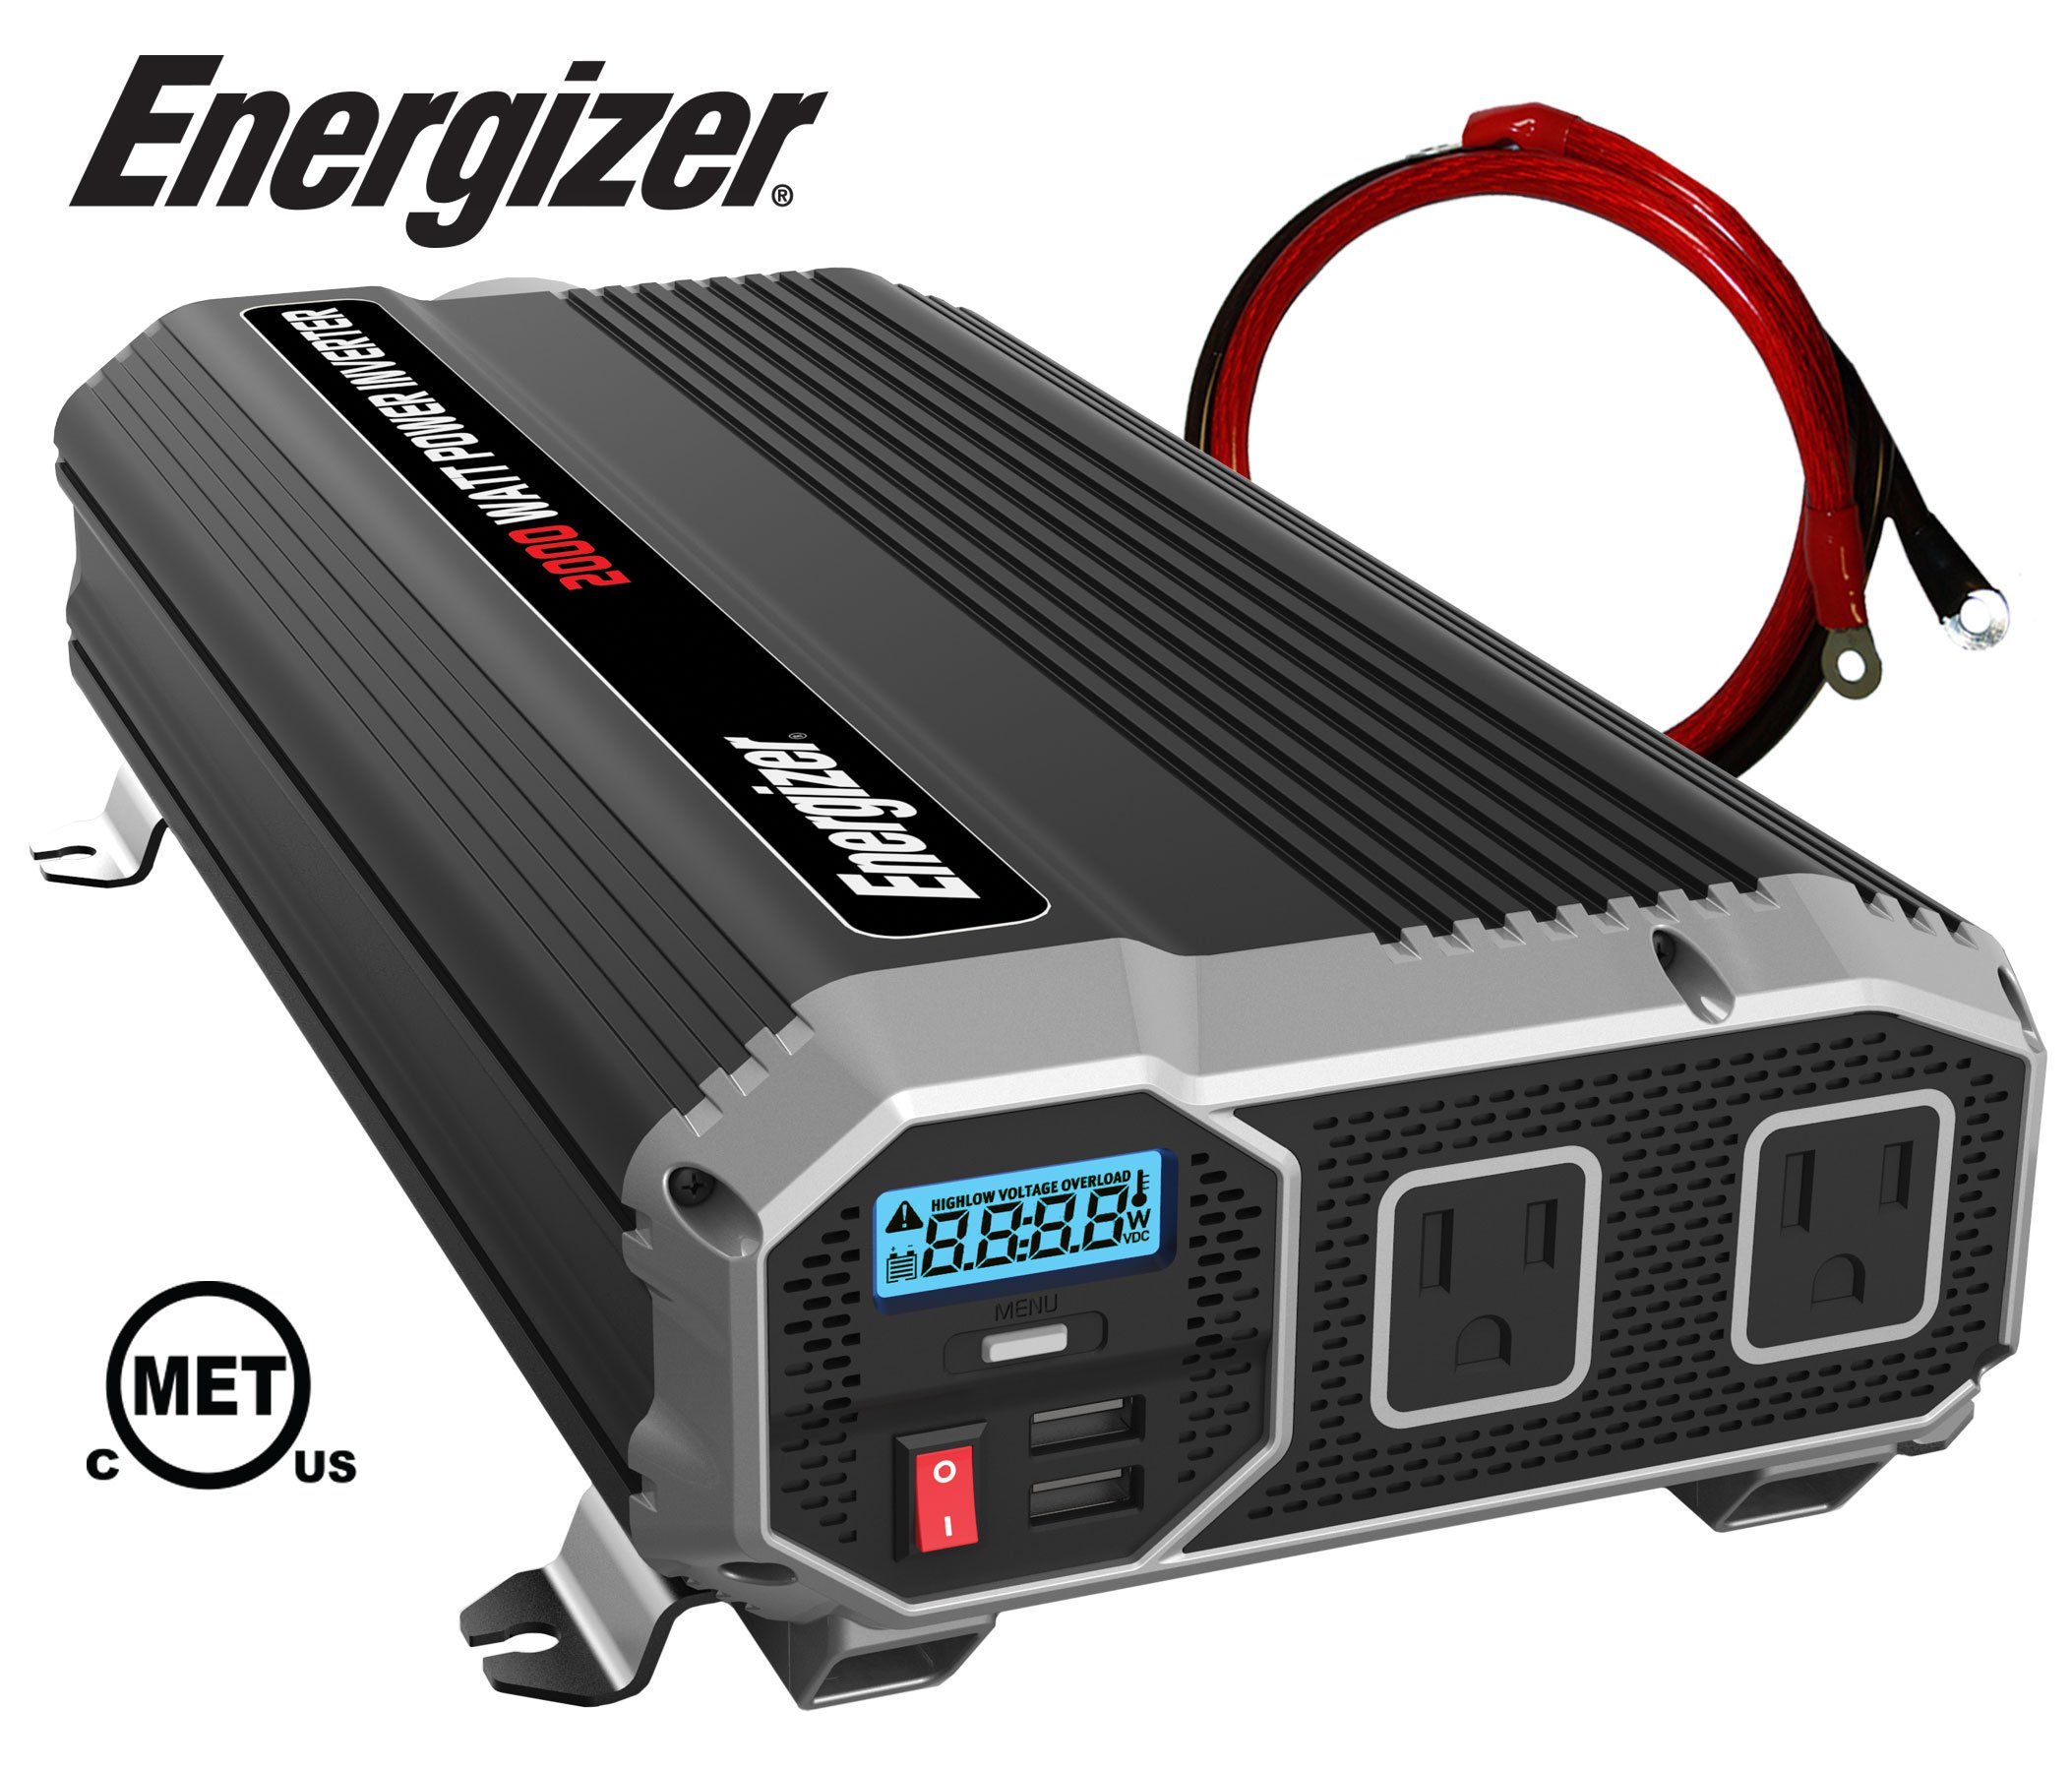 ENERGIZER 2000 Watt 12V Power Inverter, Dual 110V AC Outlets, Automotive Back Up Power Supply Car Inverter, Converts 120 Volt AC with 2 USB ports 2.4A Each by Energizer